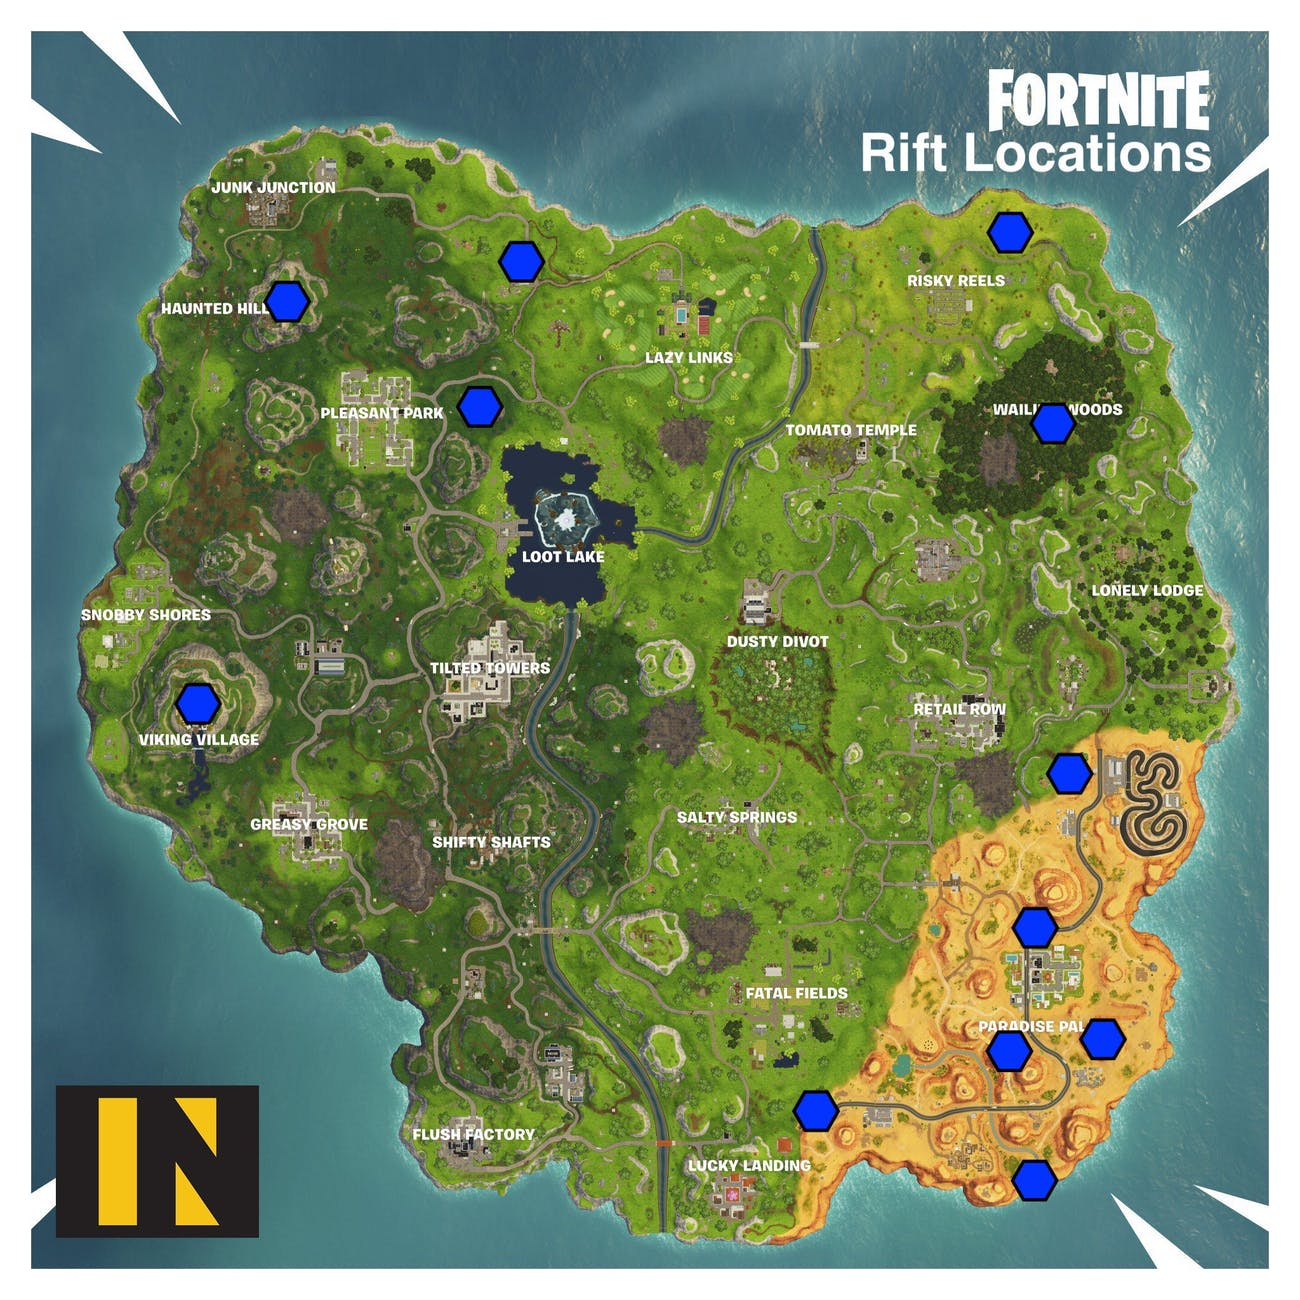 fortnite rift locations season 6 map shows where all the portals